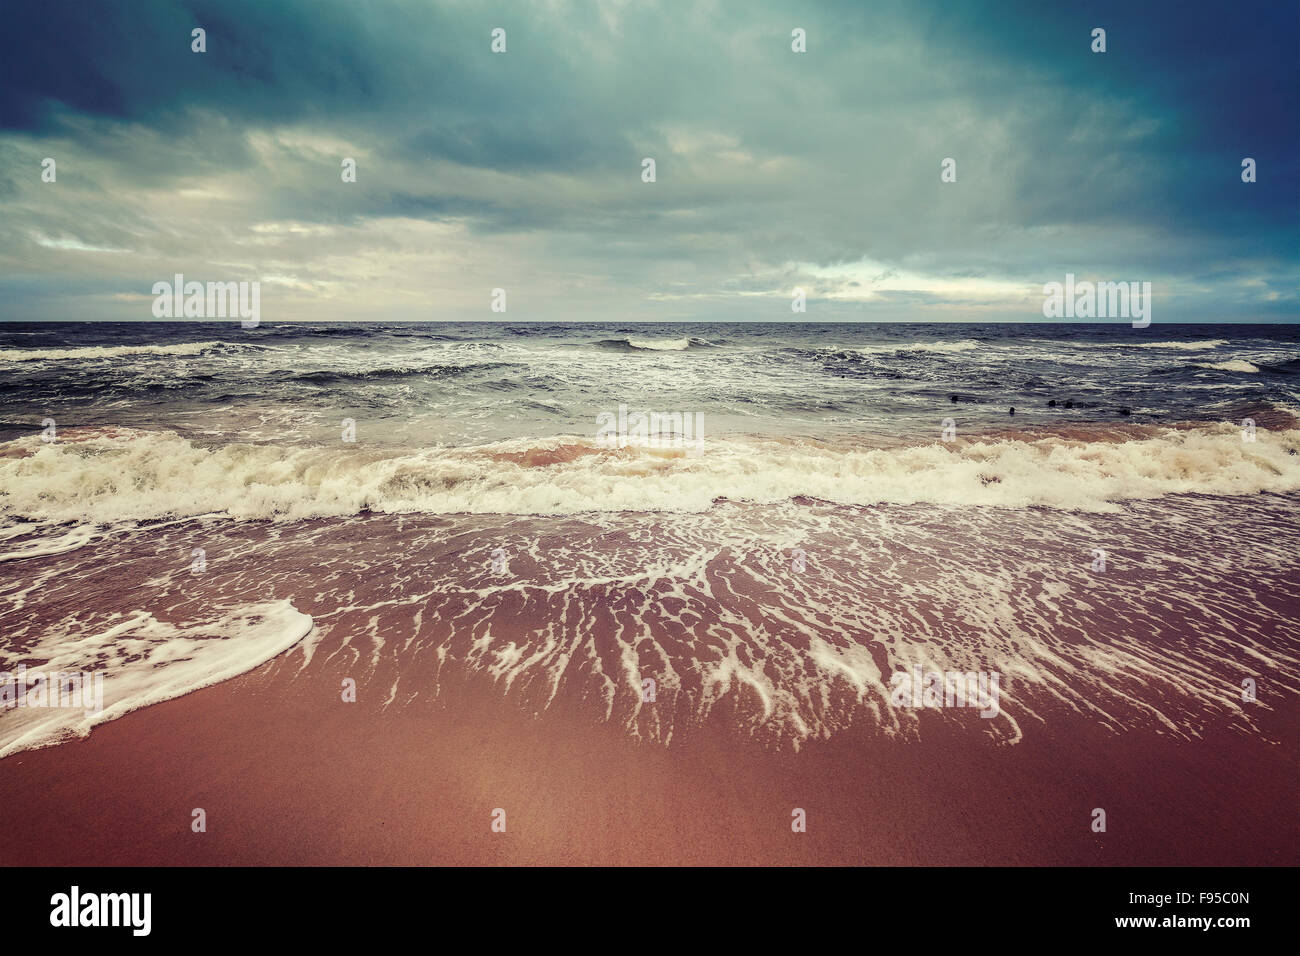 Vintage toned stormy sky over rough sea, calm before the storm concept. - Stock Image